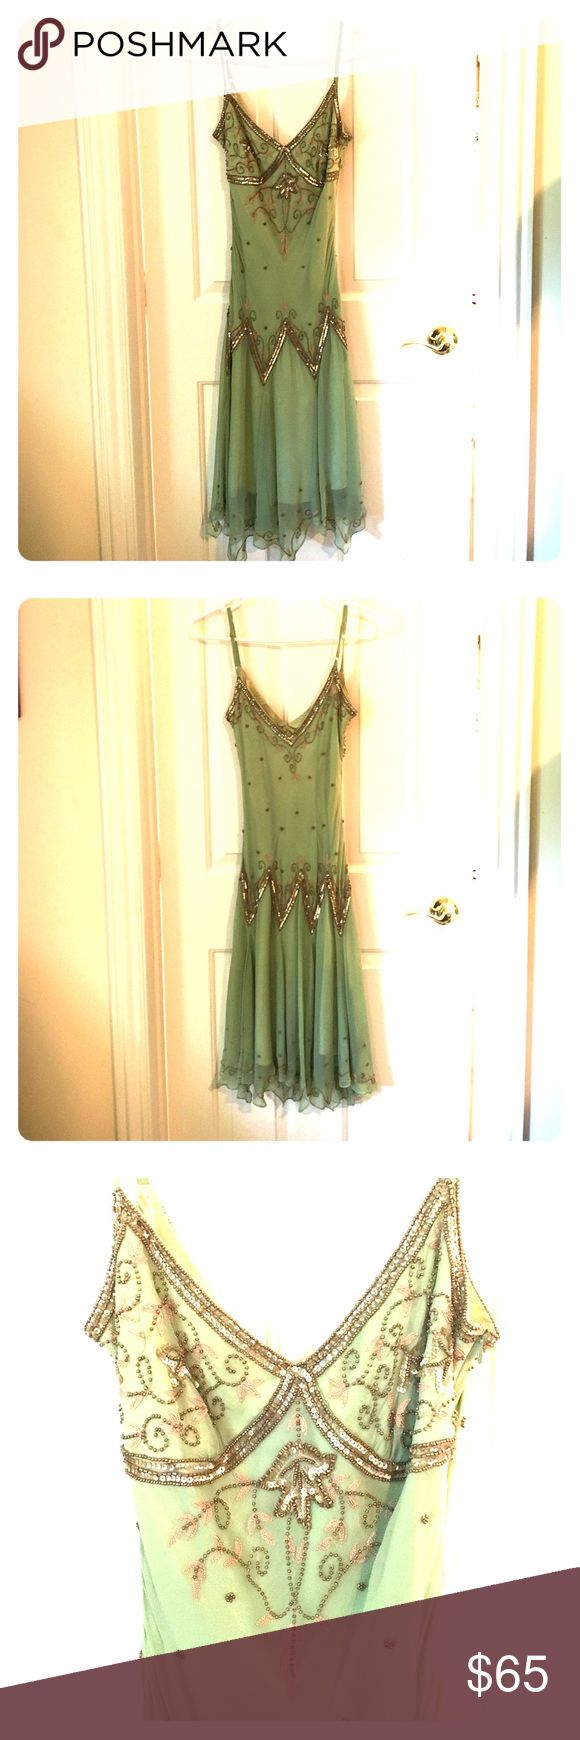 Adrianna Papell green and gold beaded dress Adrianna Papell 100% silk green and gold beaded dress. Intricately beaded and in excellent condition. Great for a prom! Size 2 petite Adrianna Papell Dresses Prom